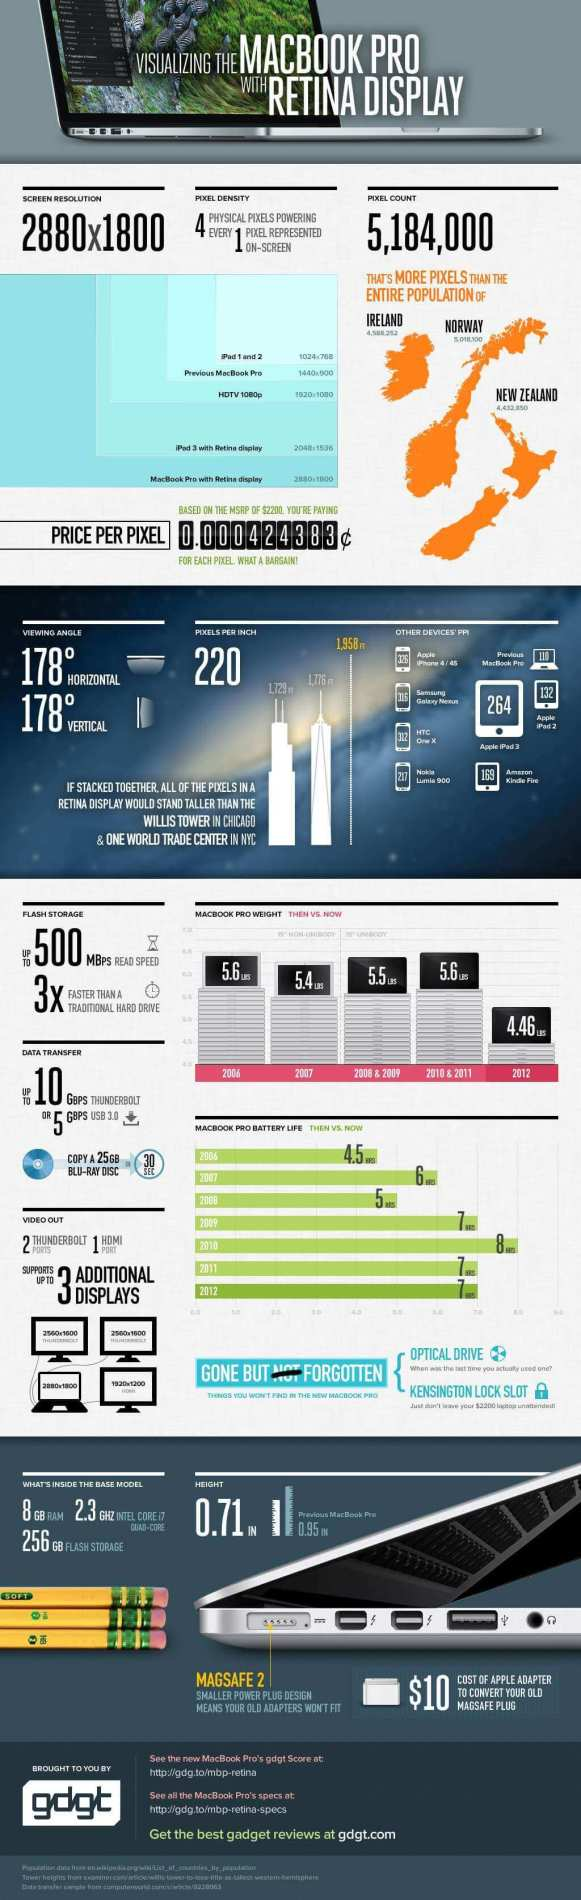 Infographic-Macbook-Pro-retina